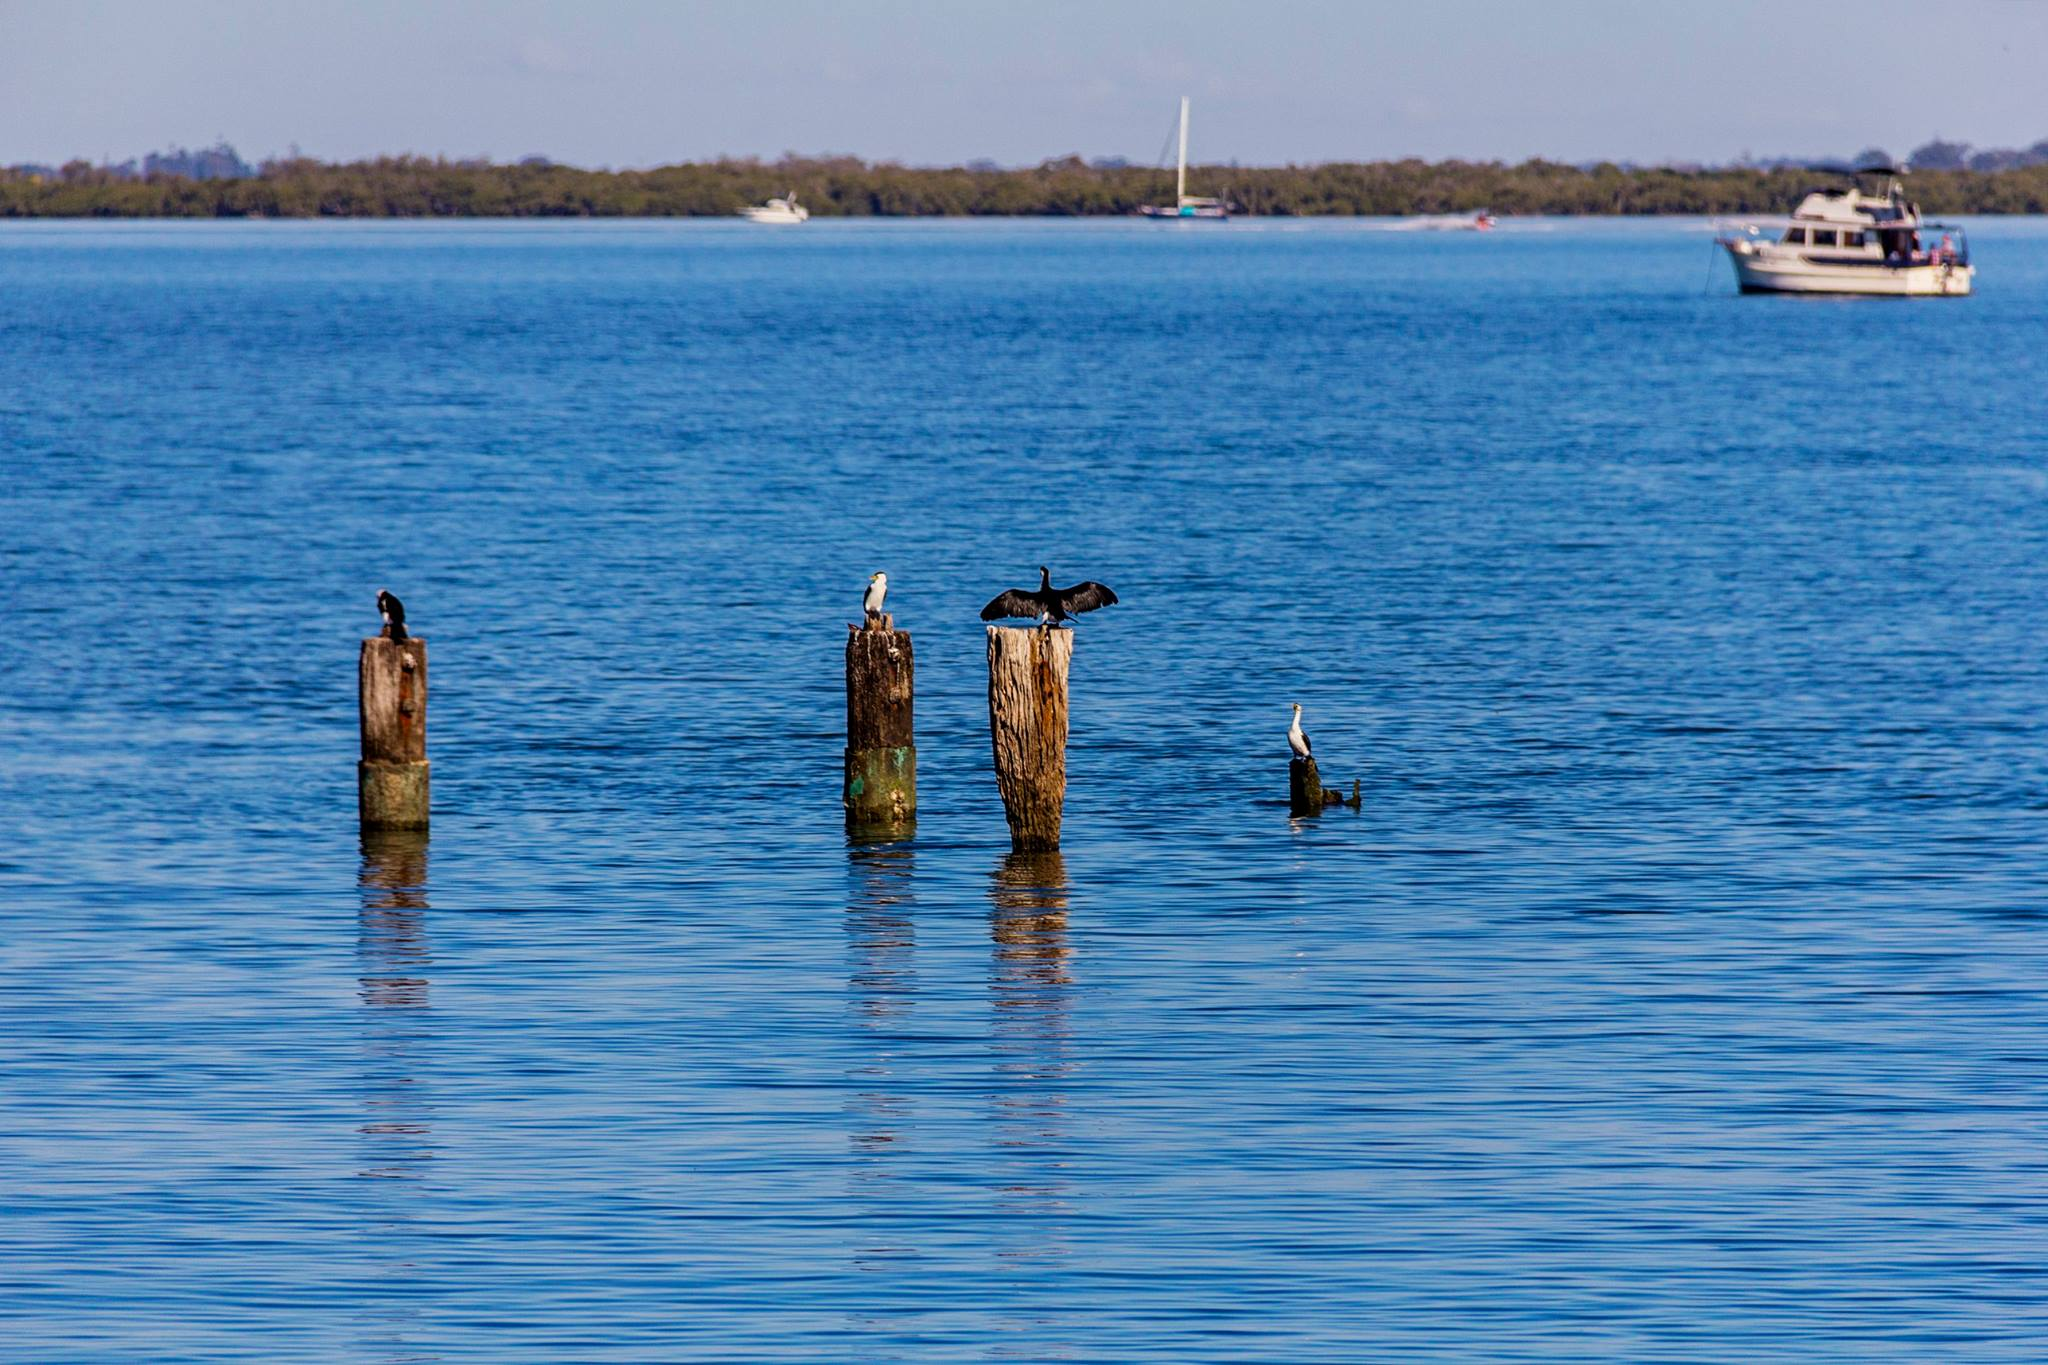 Amanda Cormorants jetty posts